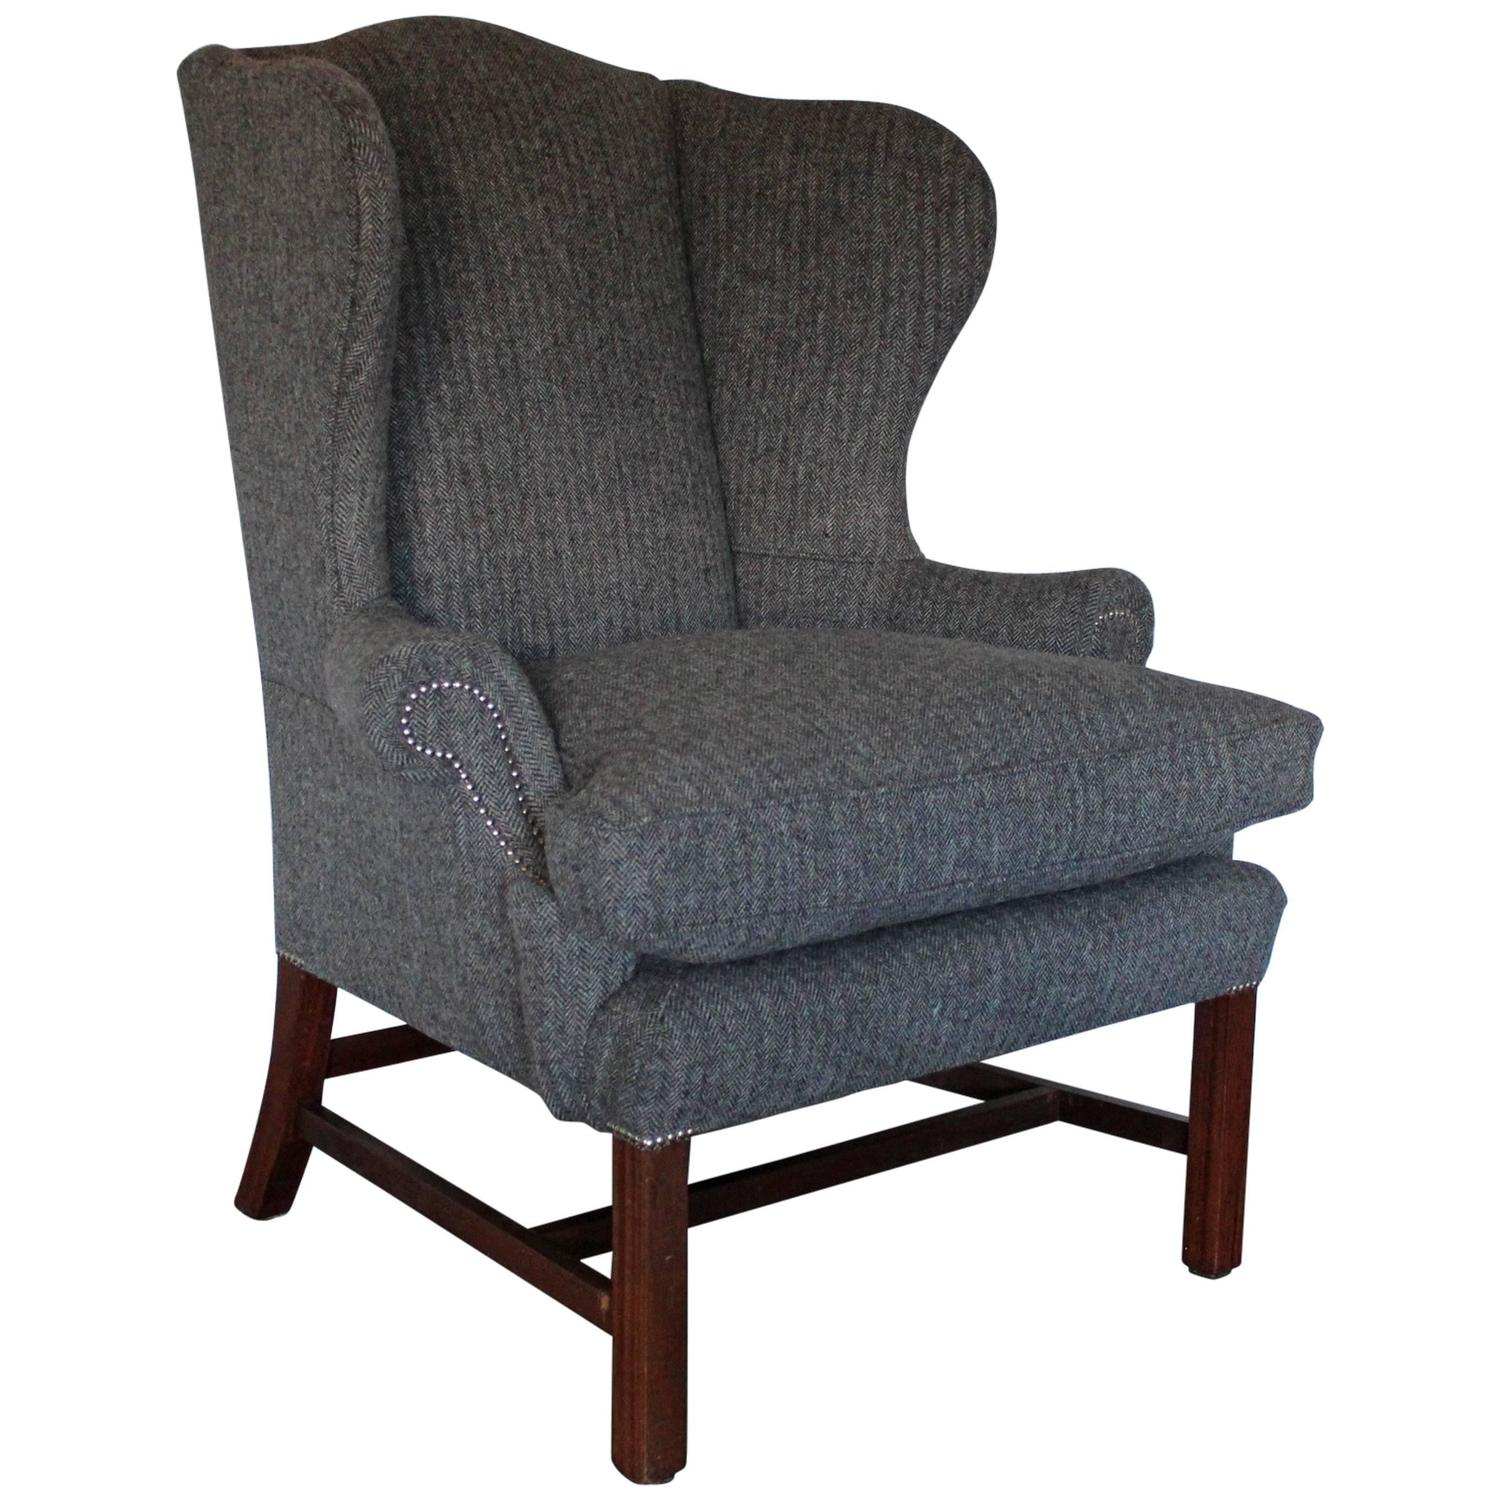 tub chair covers australia buy cheap wing chairs for sale sydney surprising winged armchair